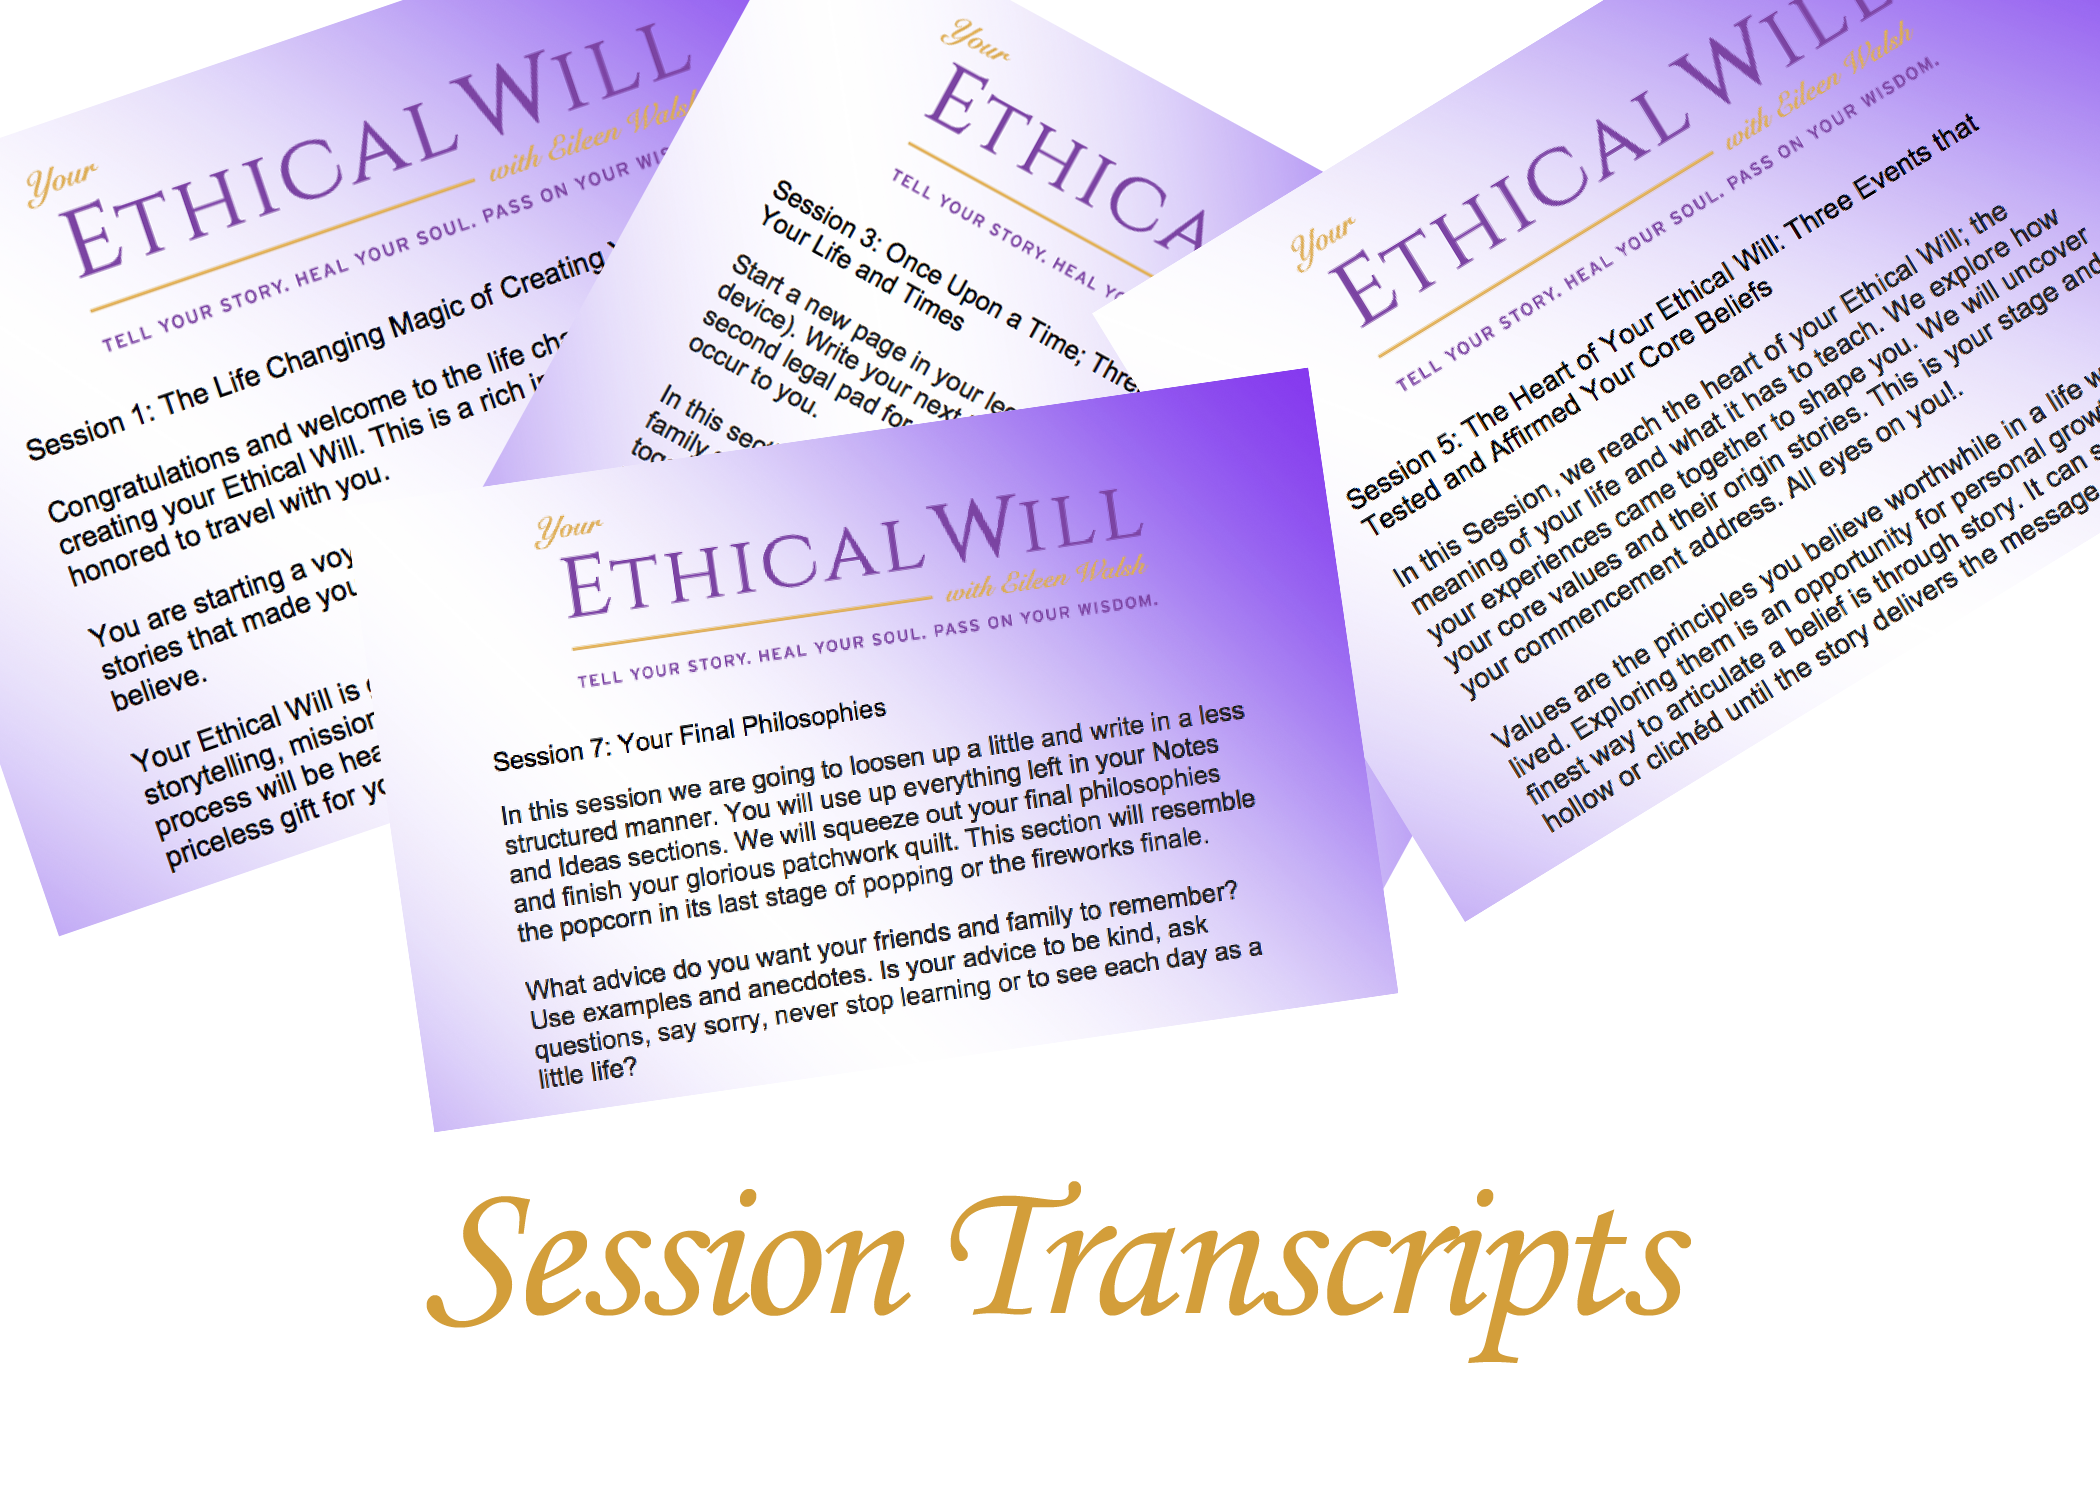 Transcripts for Each Session